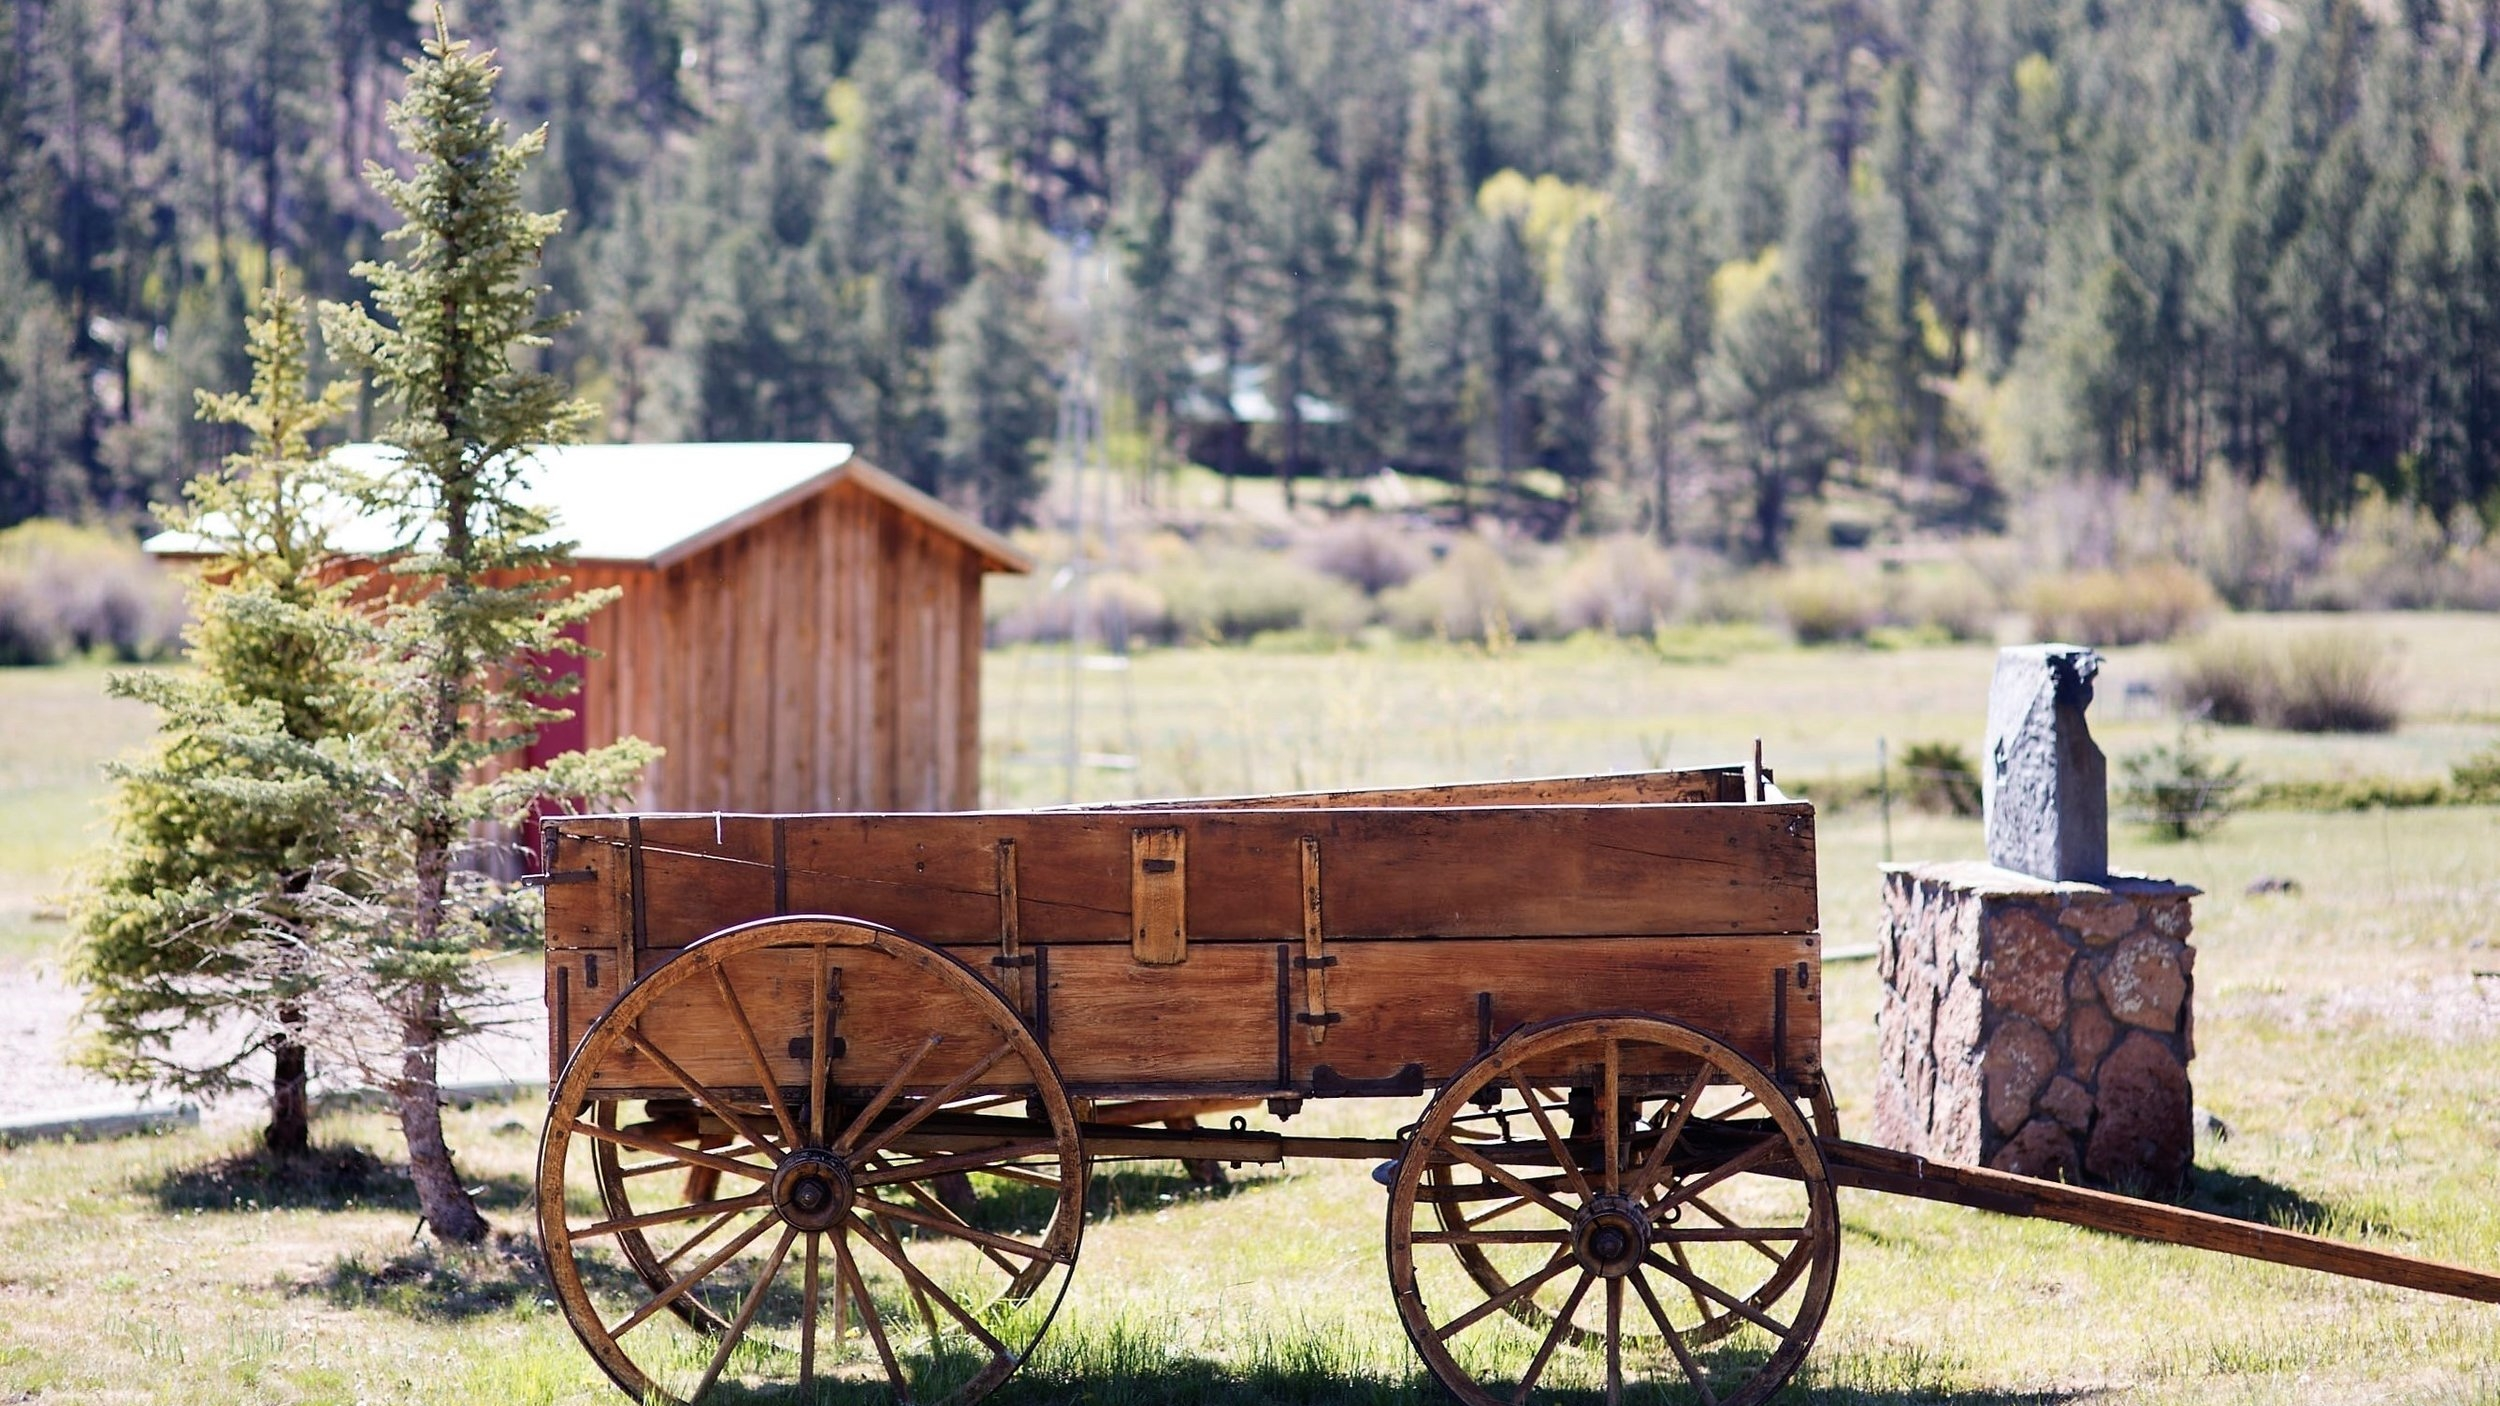 Antique wagon at Community Center.jpg